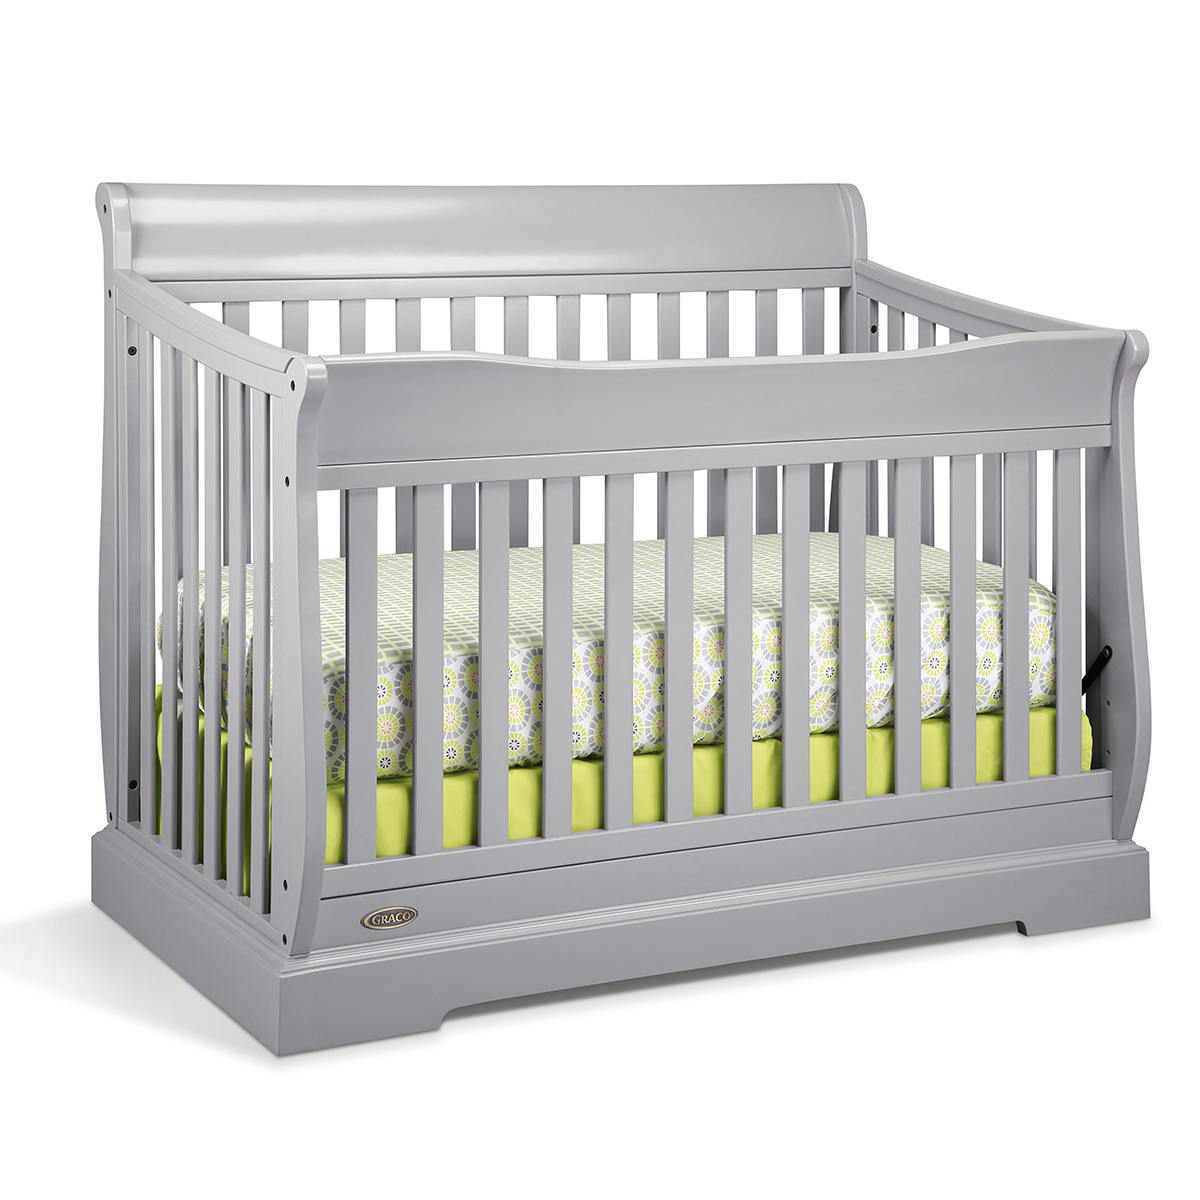 Pali crib for sale used - Graco Cribs Maple Ridge 4 In 1 Convertible Crib In Pebble Gray